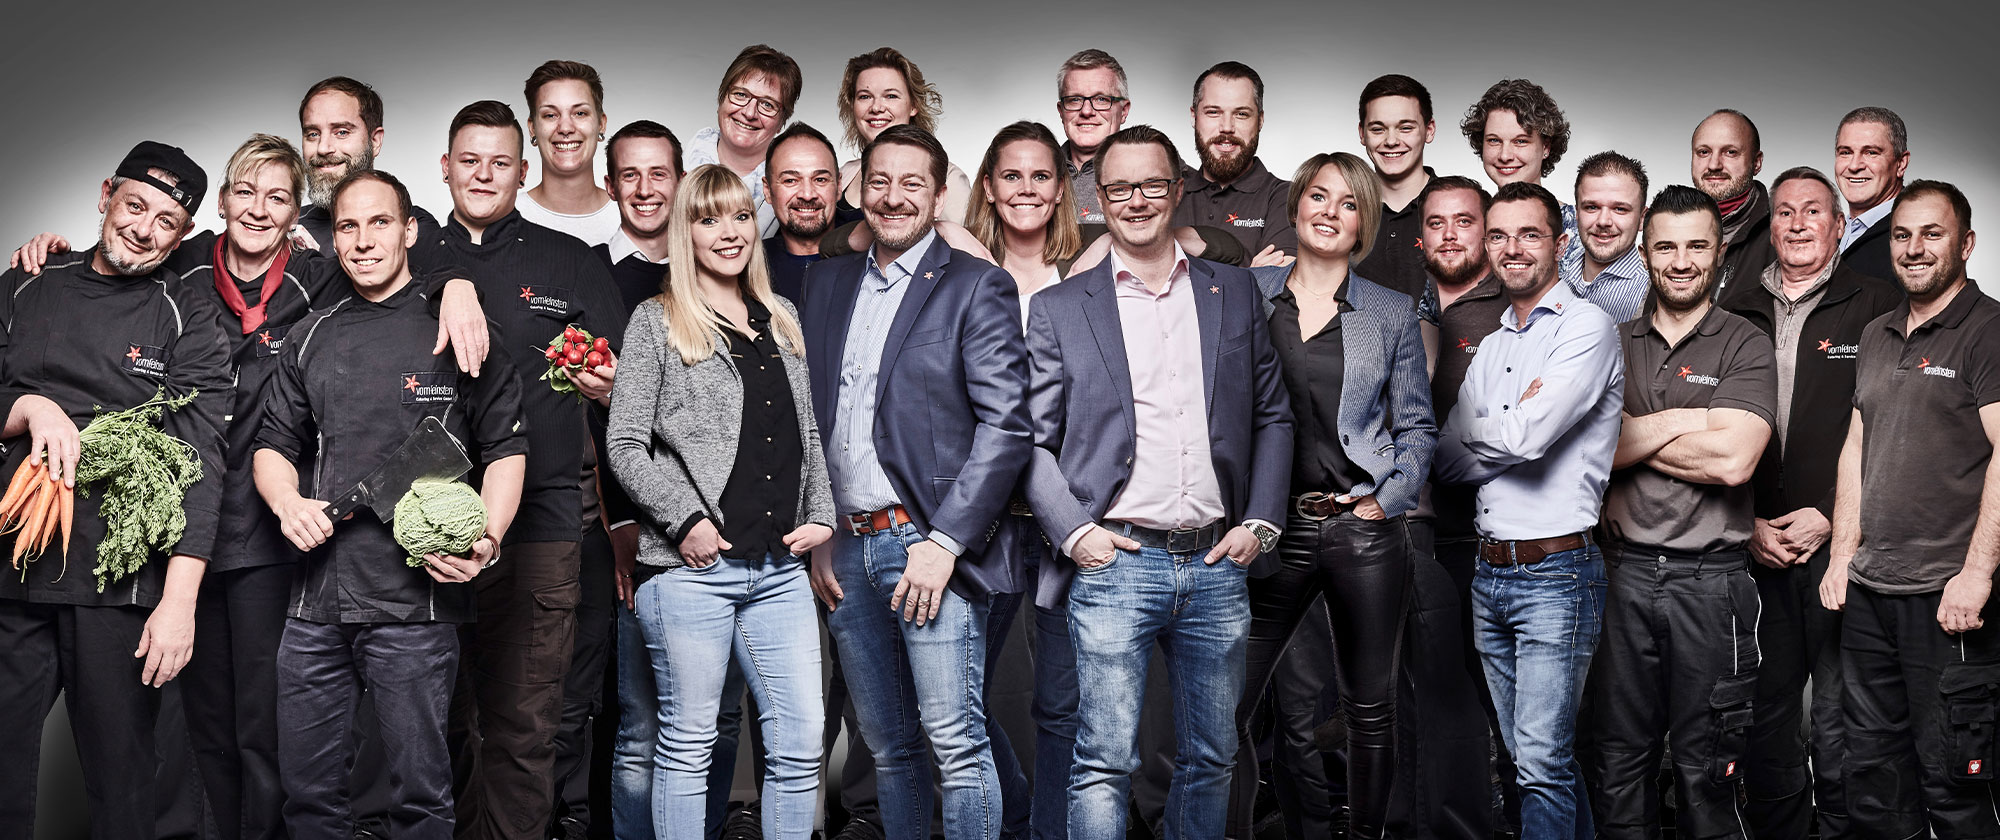 vomfeinsten-Catering-Team